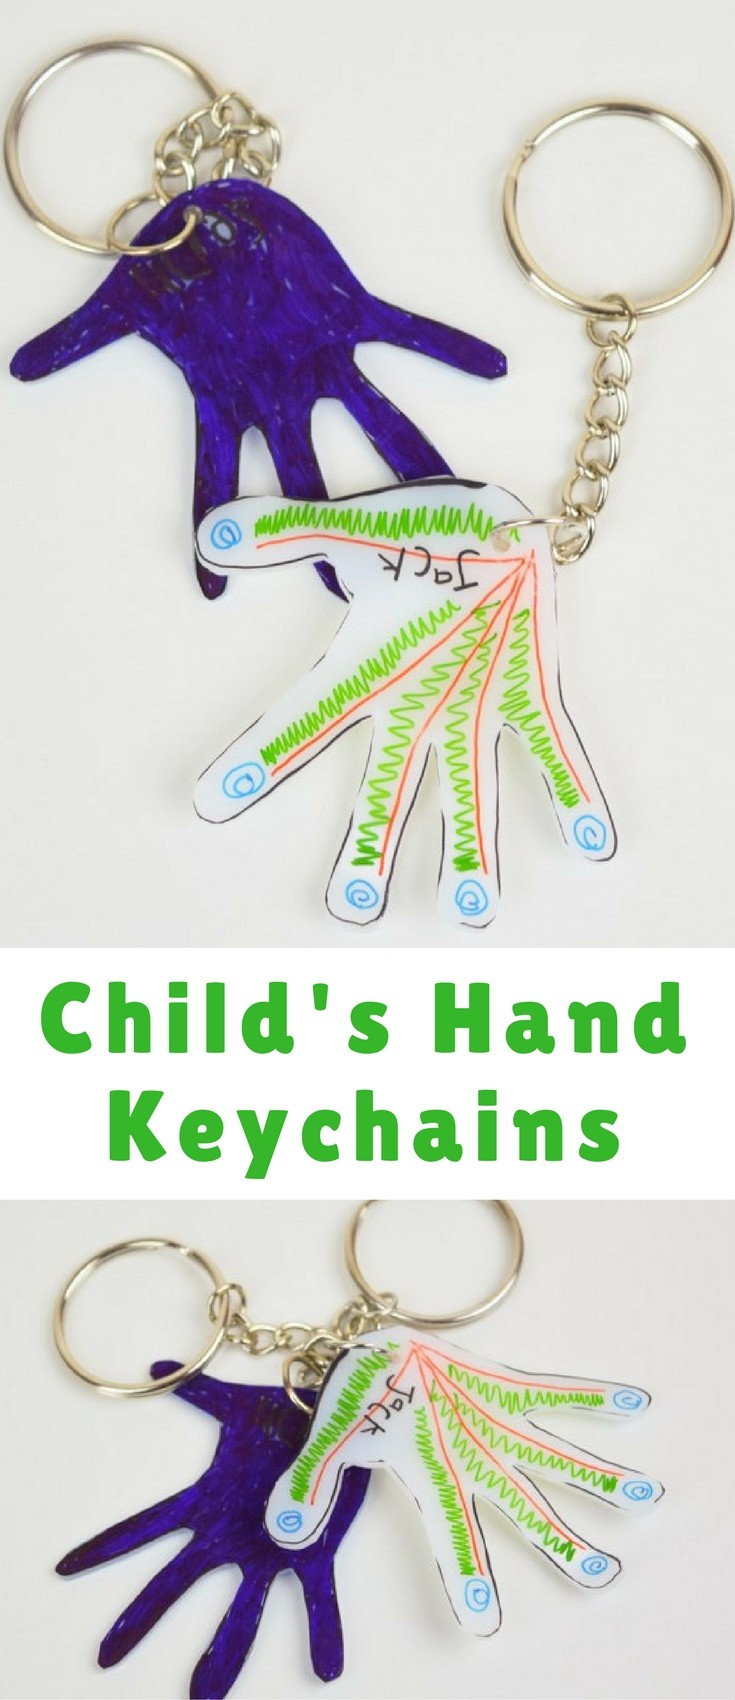 These little Child's Hand Keychains are perfect for capturing their precious hands into something that a mother, grandmother, father, etc. can take with them wherever they go. It's perfect! Something usable and sentimental.